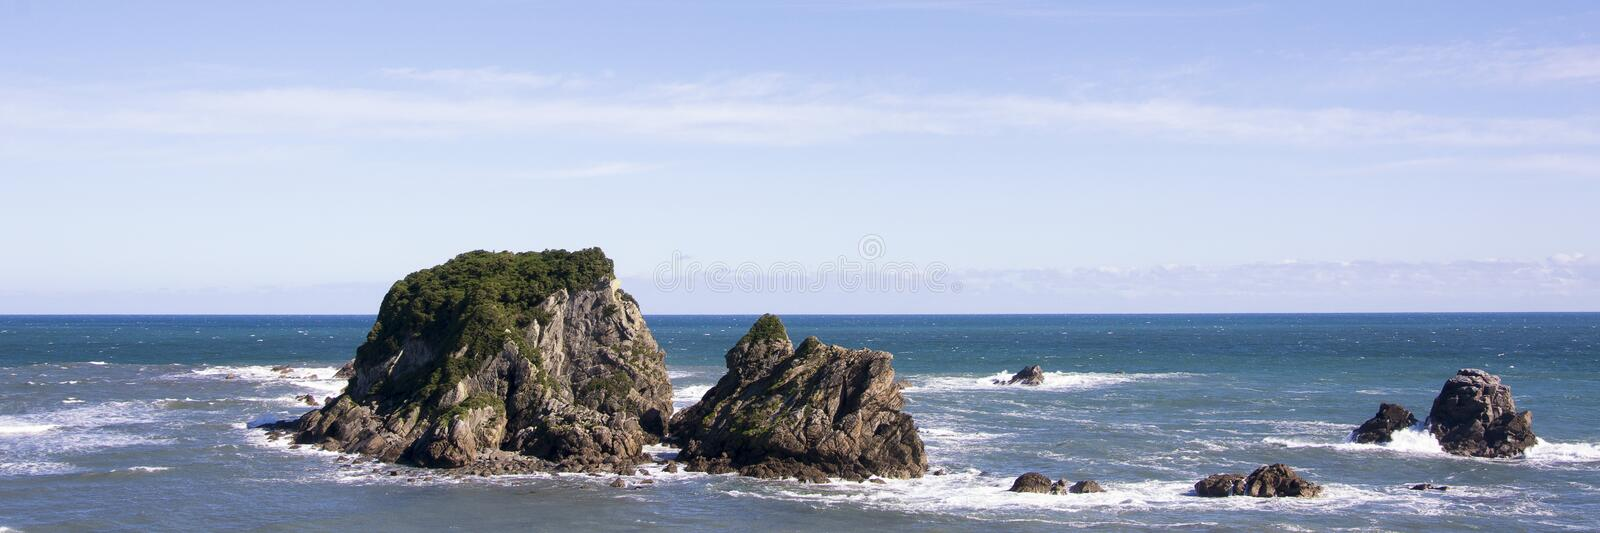 Panorama view on the beautiful New Zealand west coastal area, with the Tasman Sea, rocks, blue water and a clear sky. This is a rough, untamed and sparsely royalty free stock photo